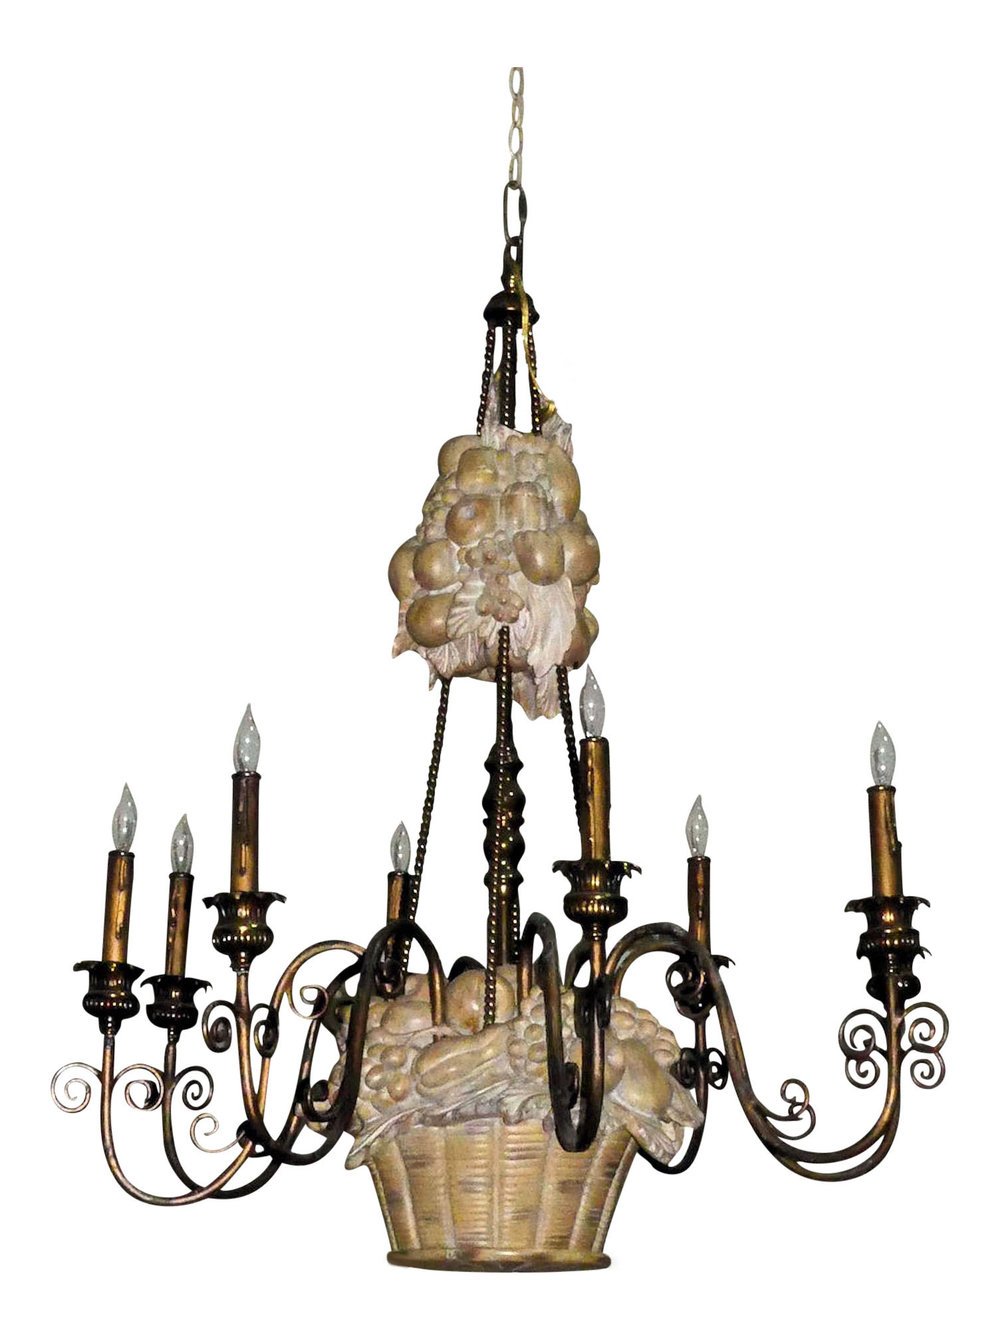 Maitland Smith 8-Light Fruit Basket Motif Chandelier   REDUCED: $2,795  / Originally: $3,895